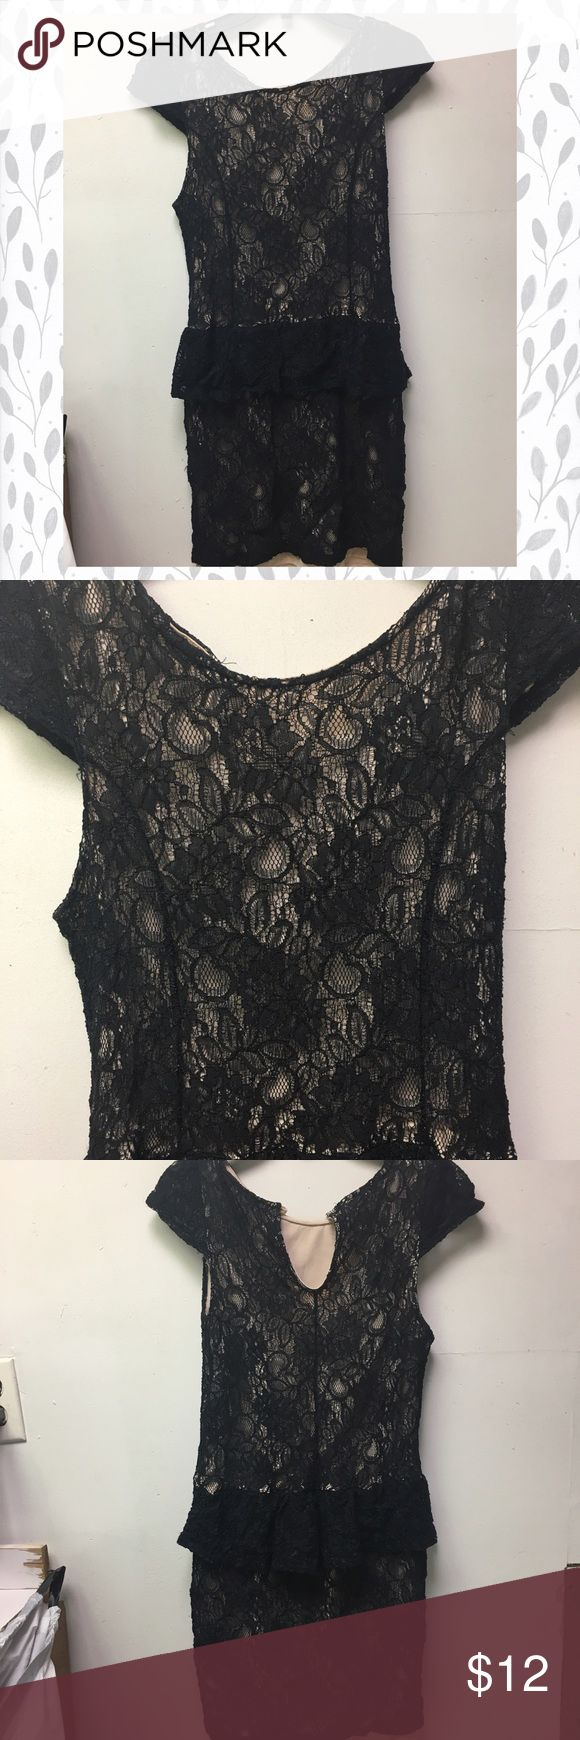 Black Lace w/ Underneath Nude Silk Mini Dress 👗 *** BACK BUTTON IS MISSING**** for you crafty ladies, a new button can be sewn on (; easy fix! Super cute, the price is right! Perfect for a cocktail dress, or a semi-formal event. Easily can be dressed up or down. It is in PERFECT condition!! Not one stain, no tears, has detailed black pattern on top with a nude silk-like underneath. It's very sexy and classy. (; the dress also has a cute flare mid-waist to highlight your curves. 💋💄 Poof…